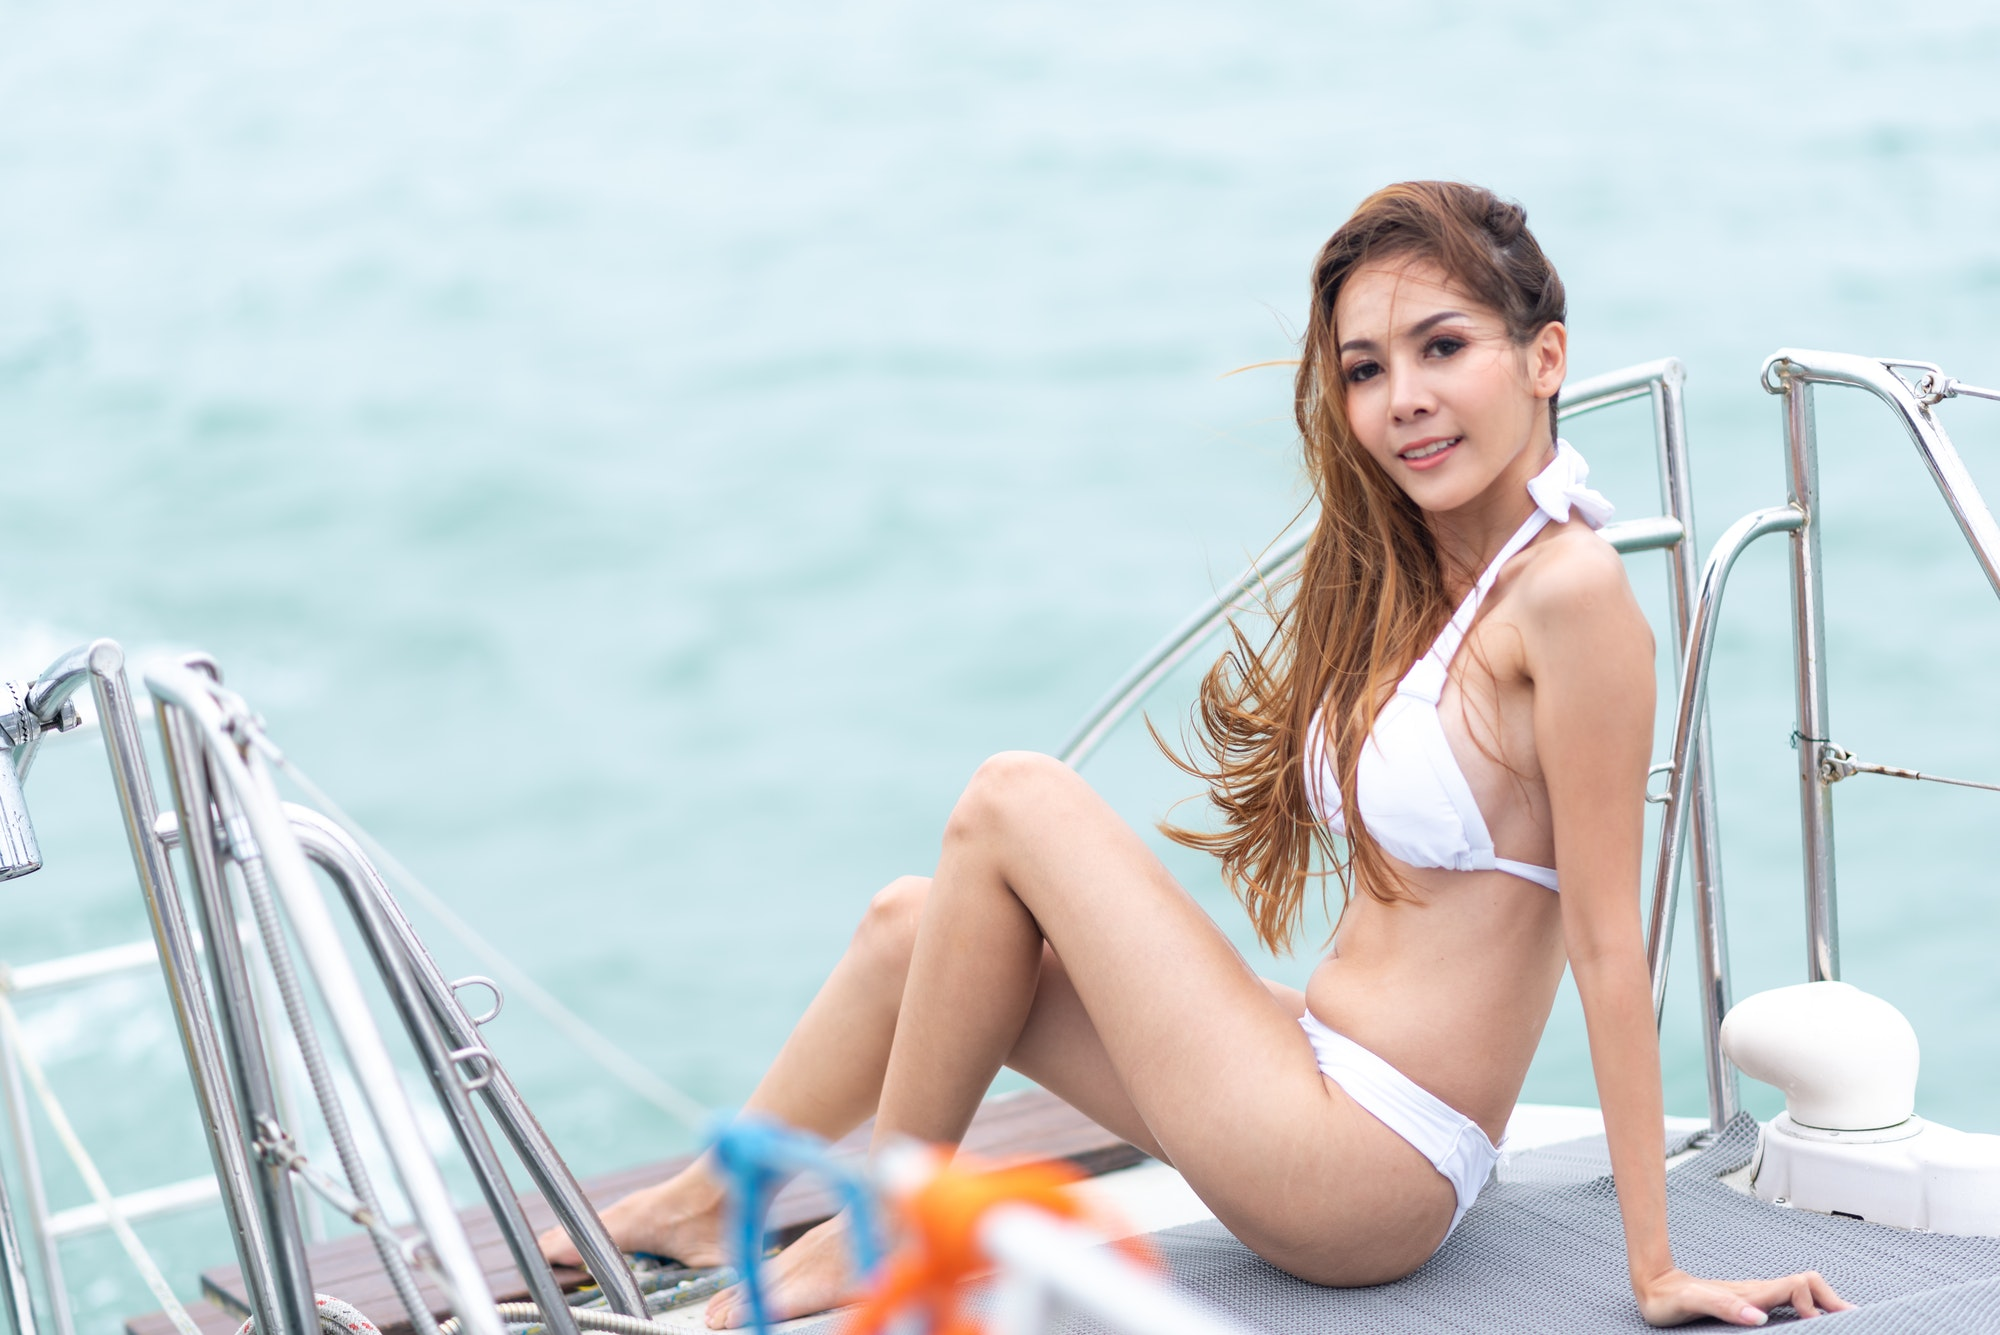 Sexy Asian woman in a bikini on a yacht, summer concept